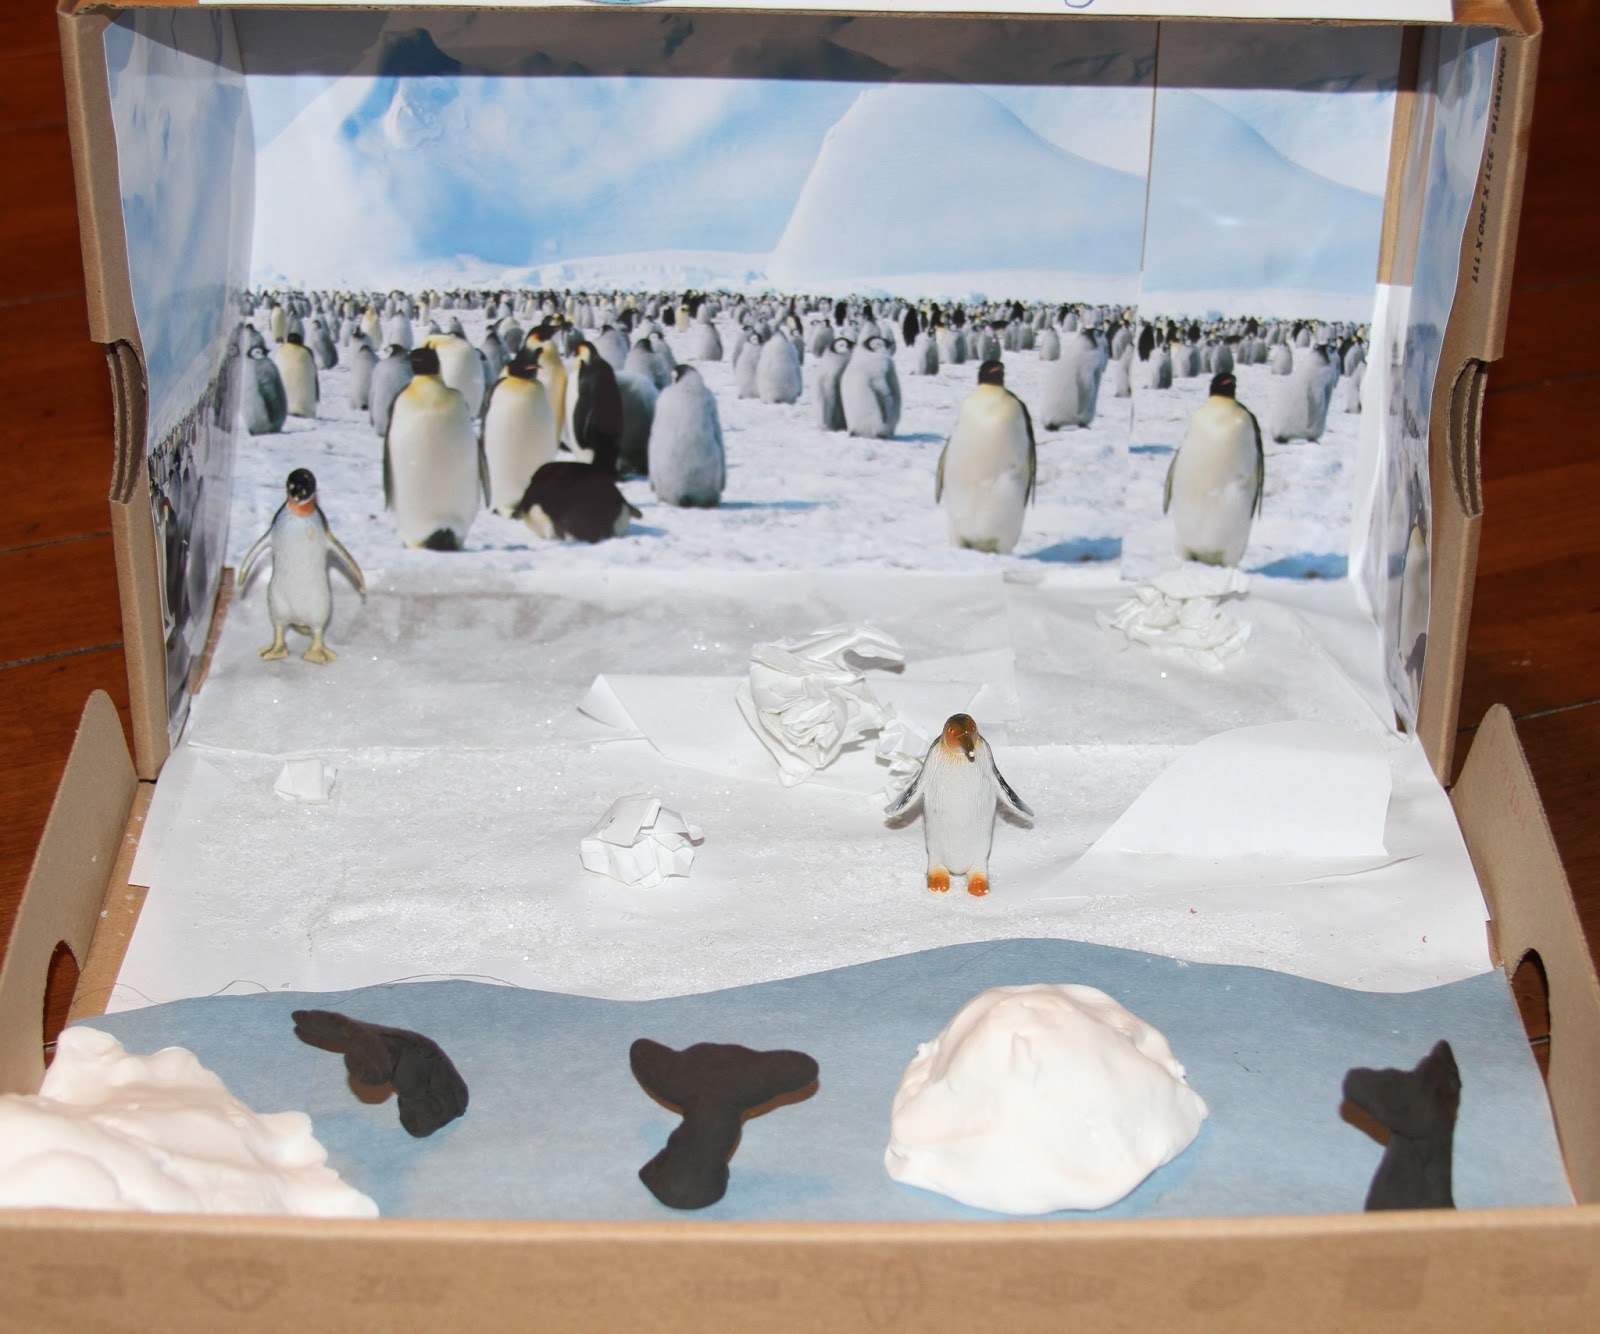 Elementary Habitat Shoebox Project http://losingsleepcountingsheep.blogspot.com/2013/02/popularity-of-penguins.html